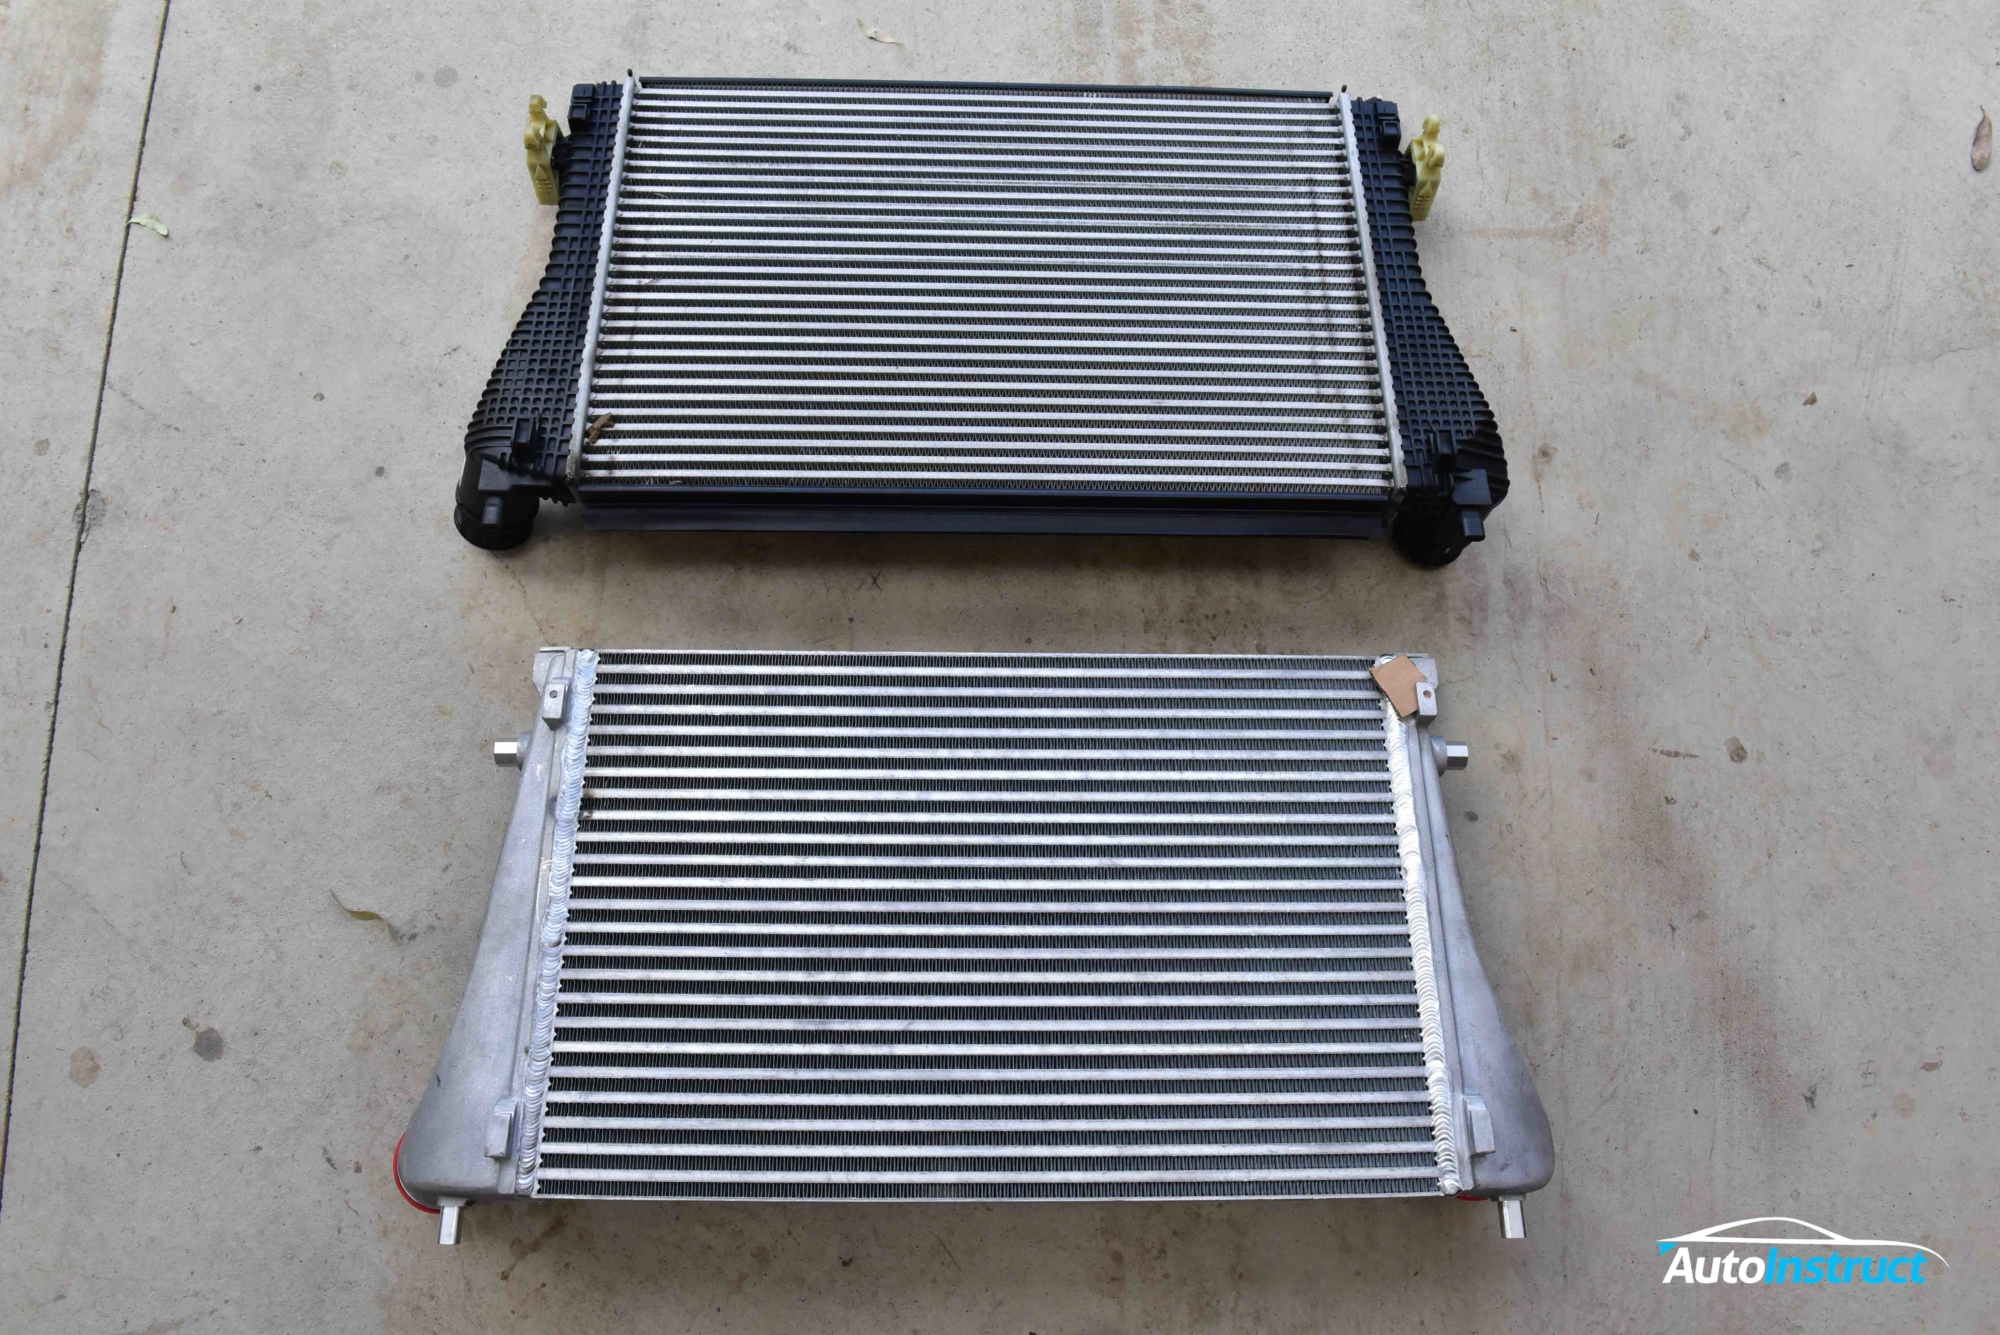 MK7 Golf Intercooler Install CTS